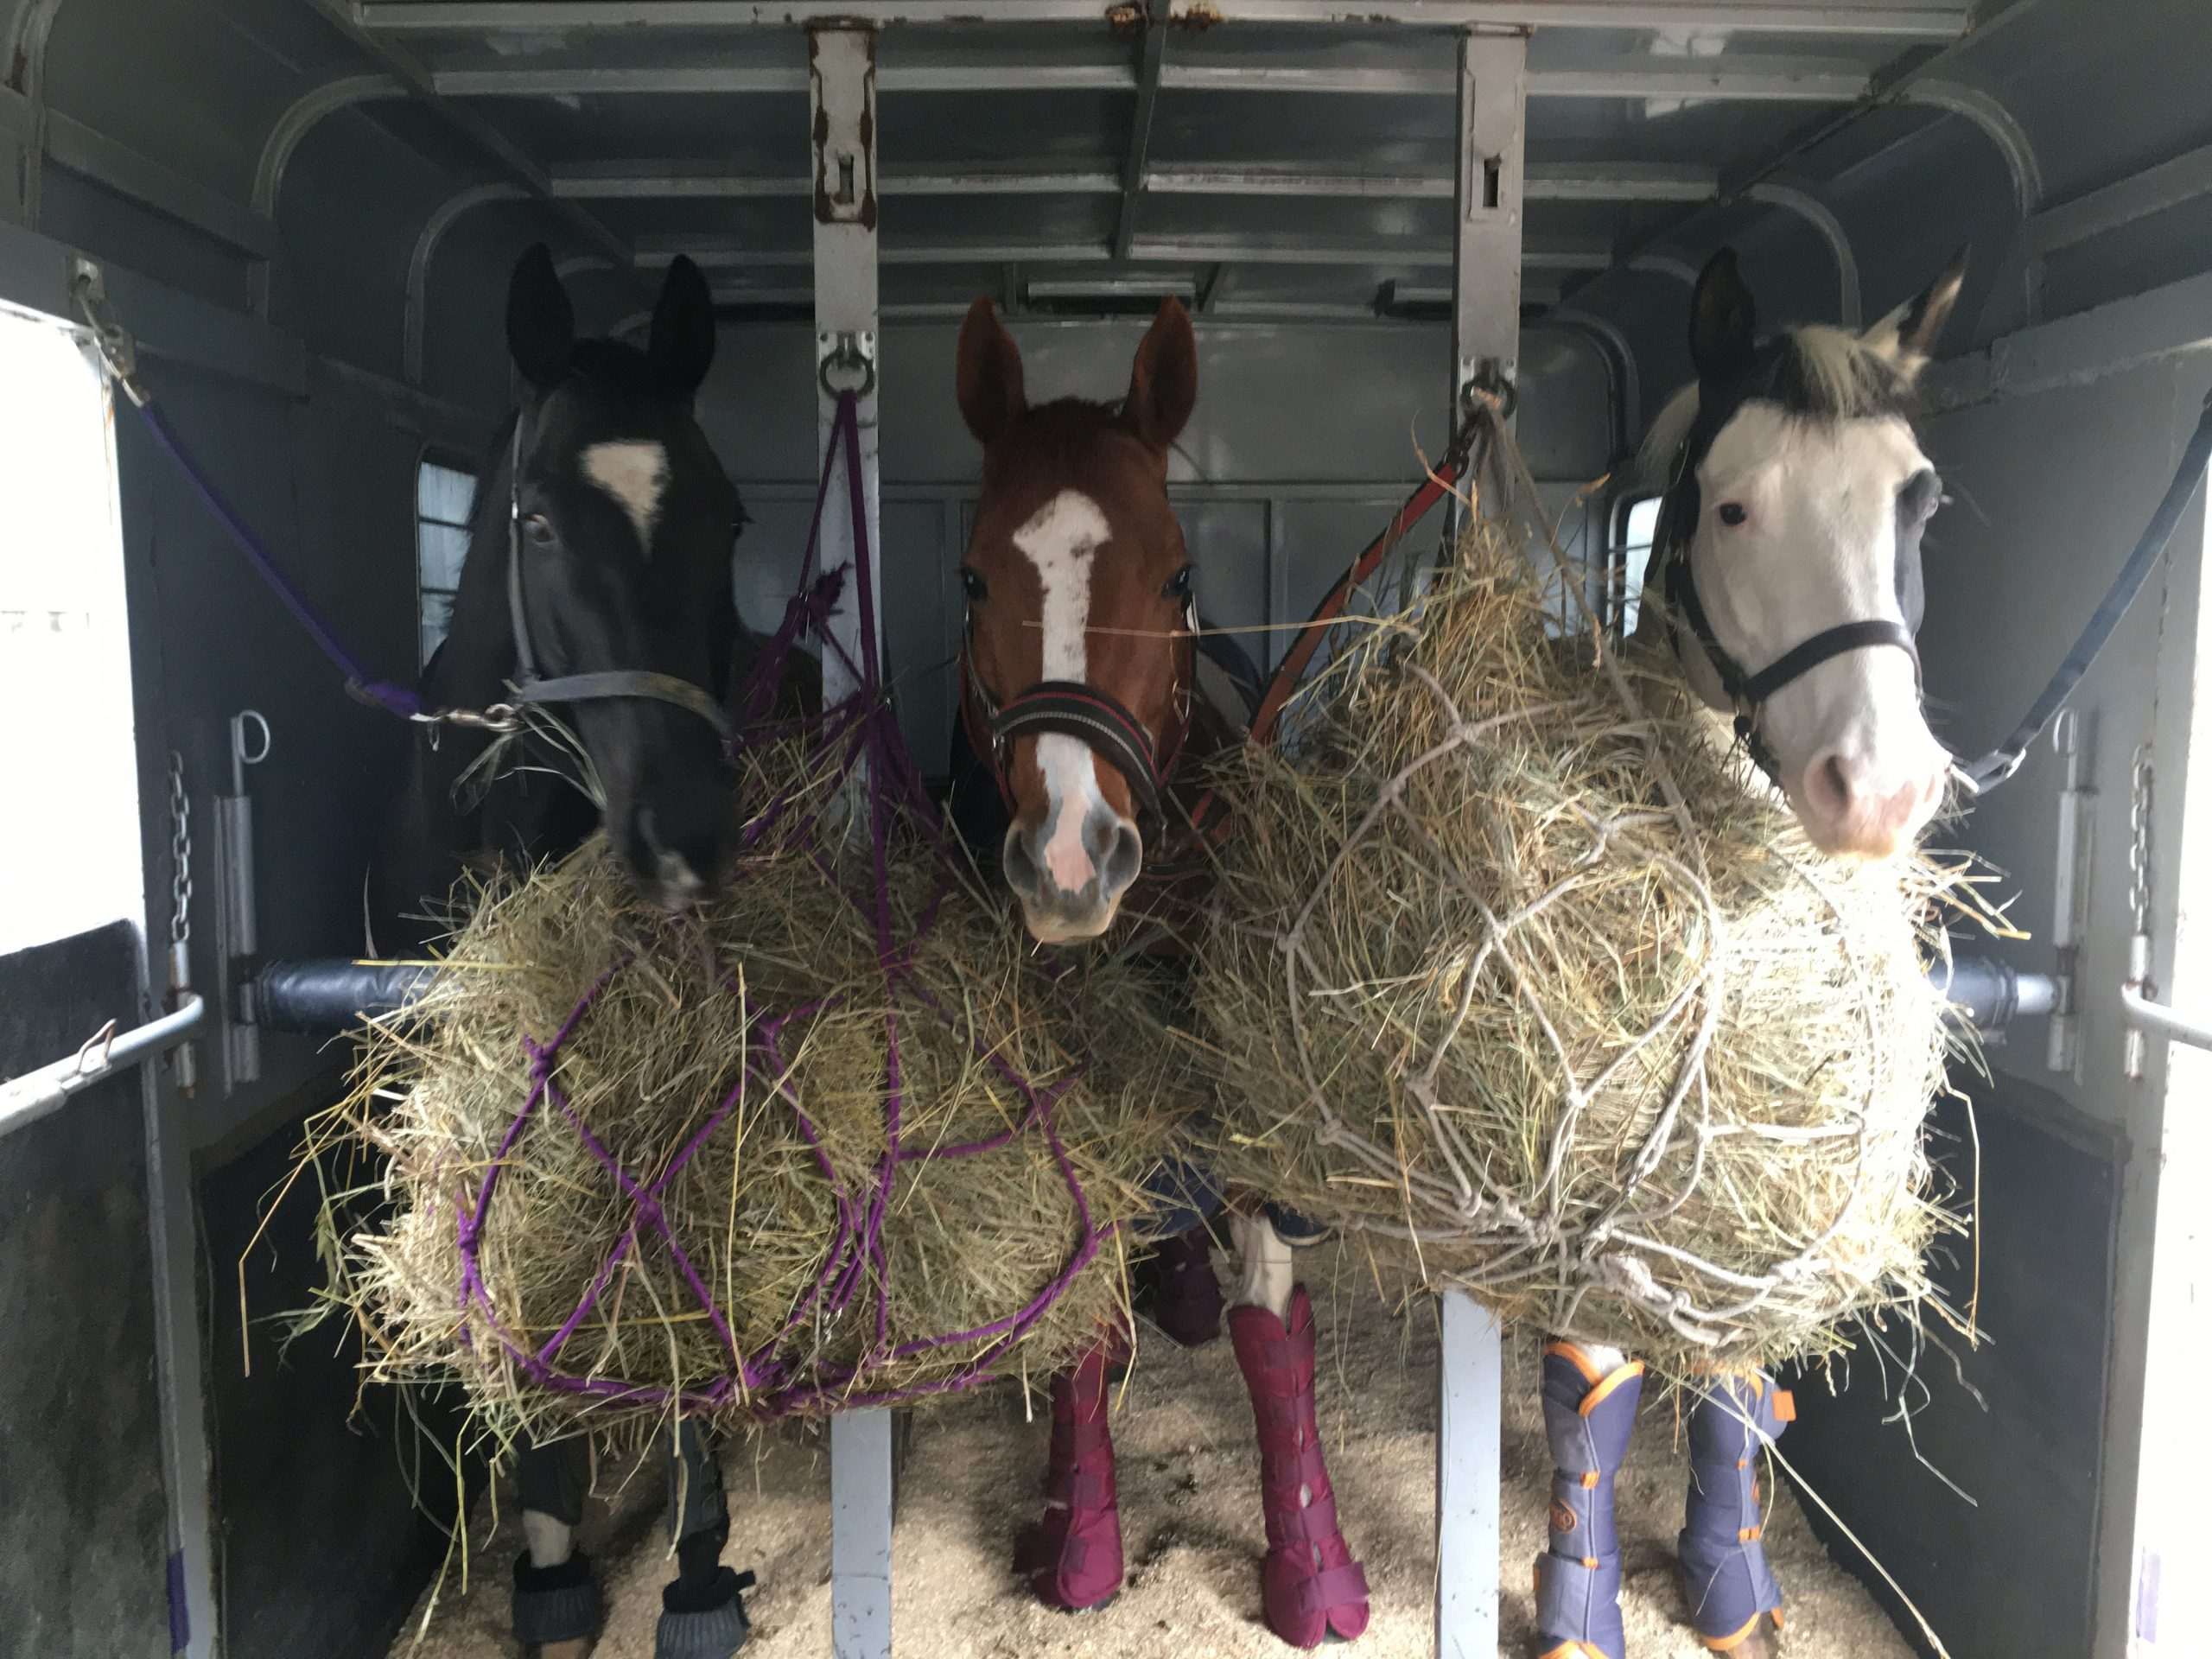 Horses in trailer with hay